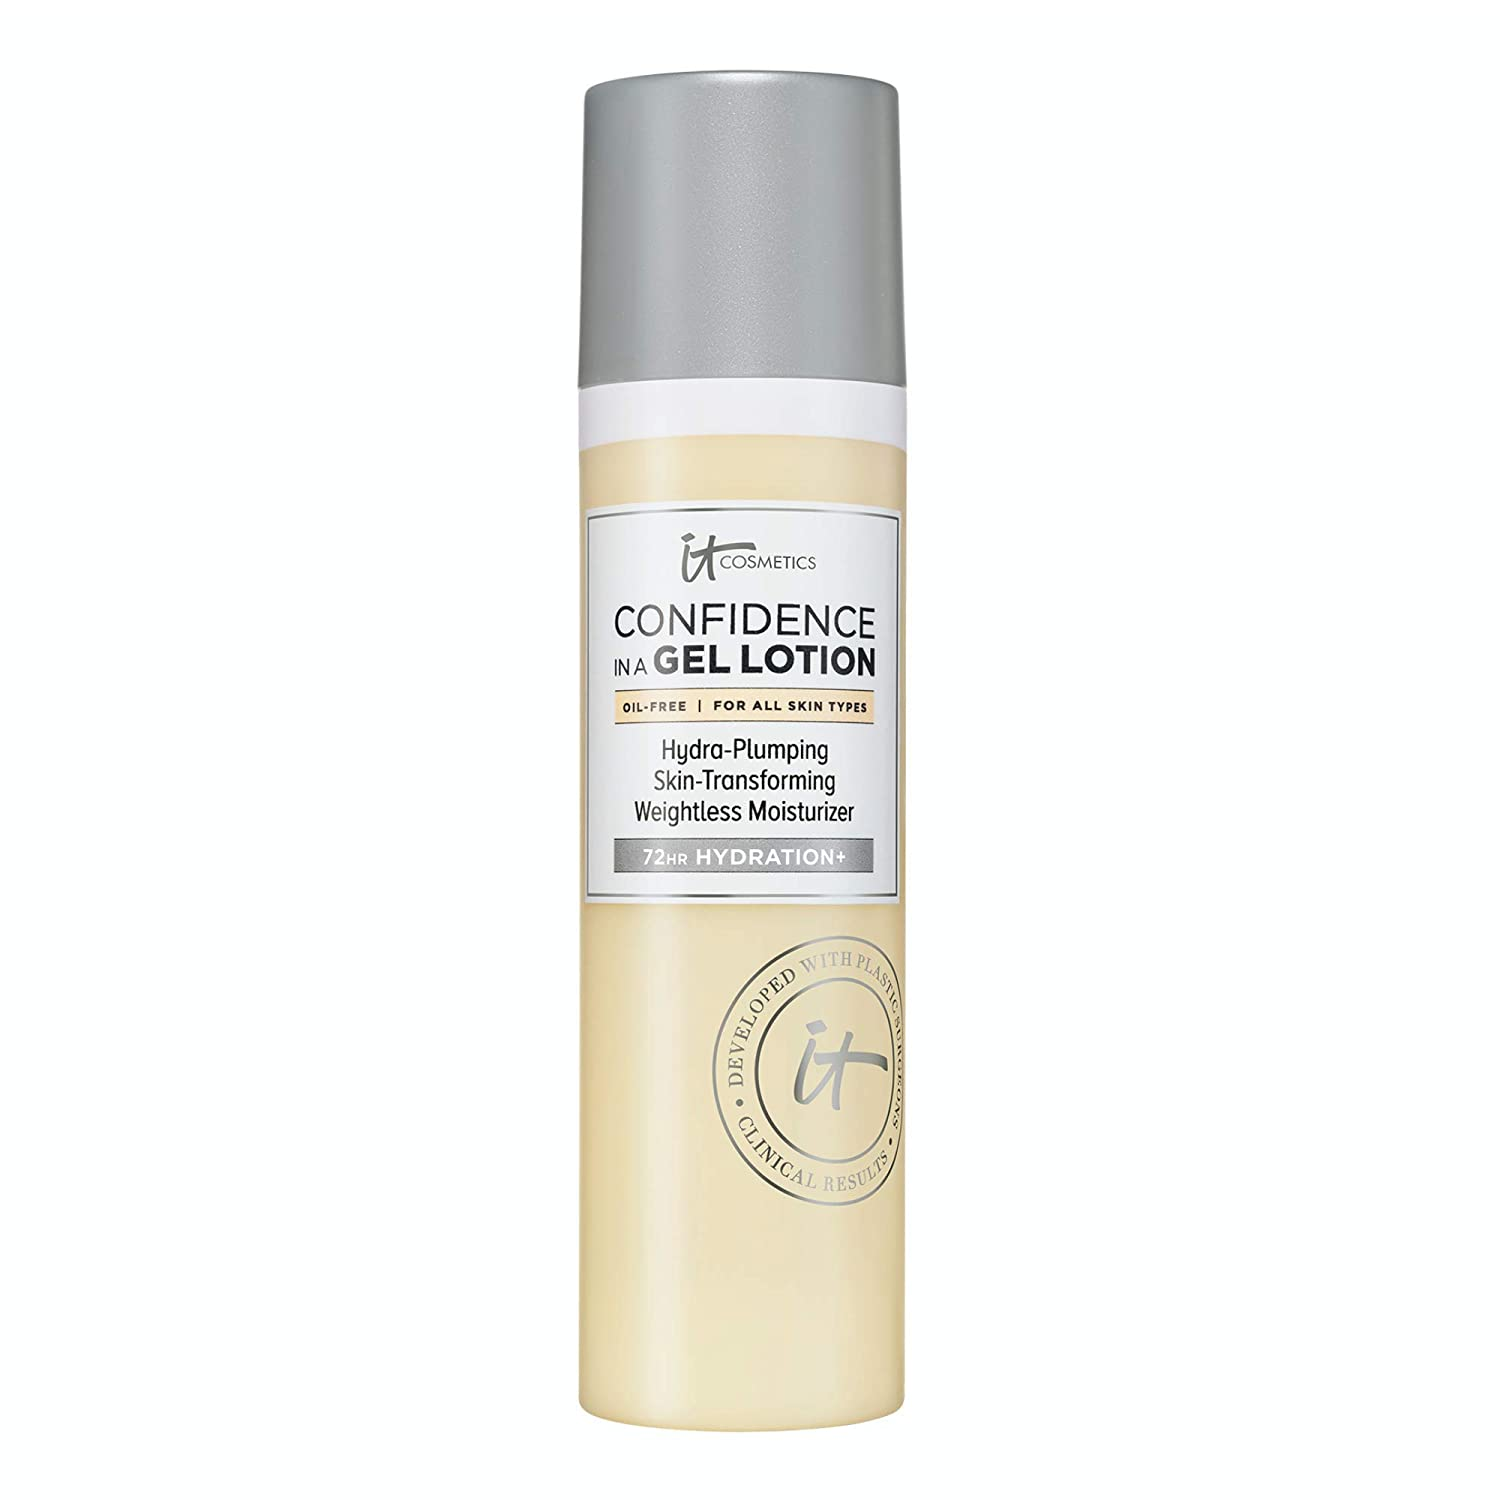 IT Cosmetics Confidence in a Gel Lotion - Oil-Free Face Moisturizer - Lightweight & Hydrating - With Ceramides - 2.5 fl oz: Beauty